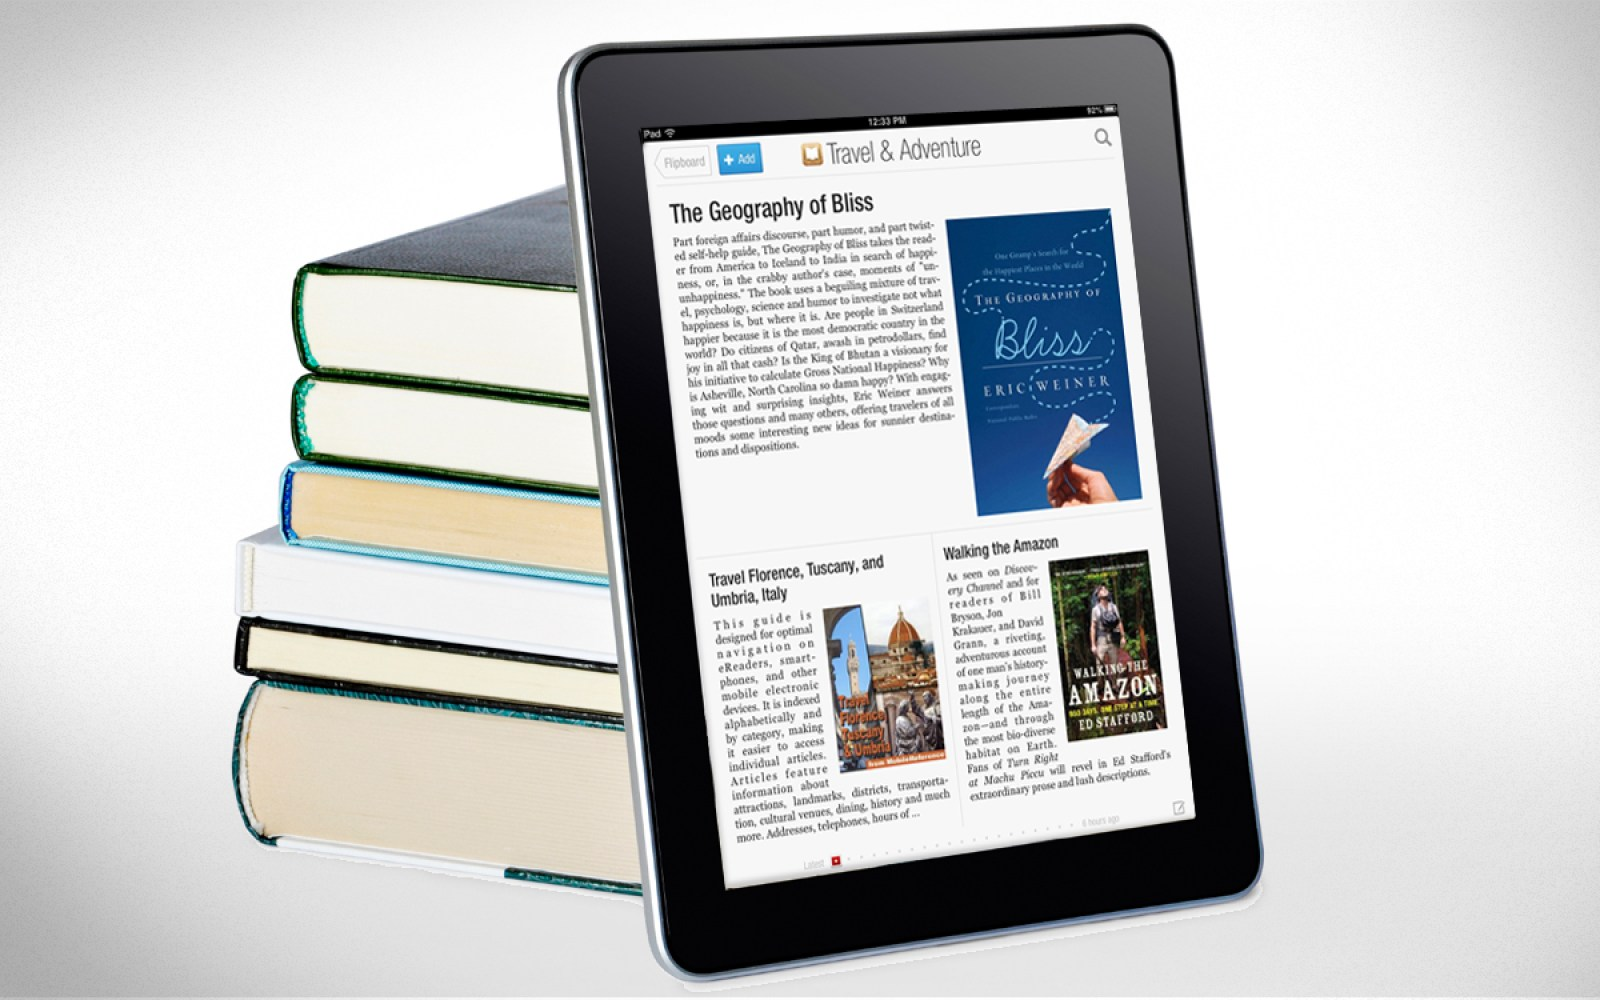 Flipboard Opens New Books Category Showcasing Most Popular Books